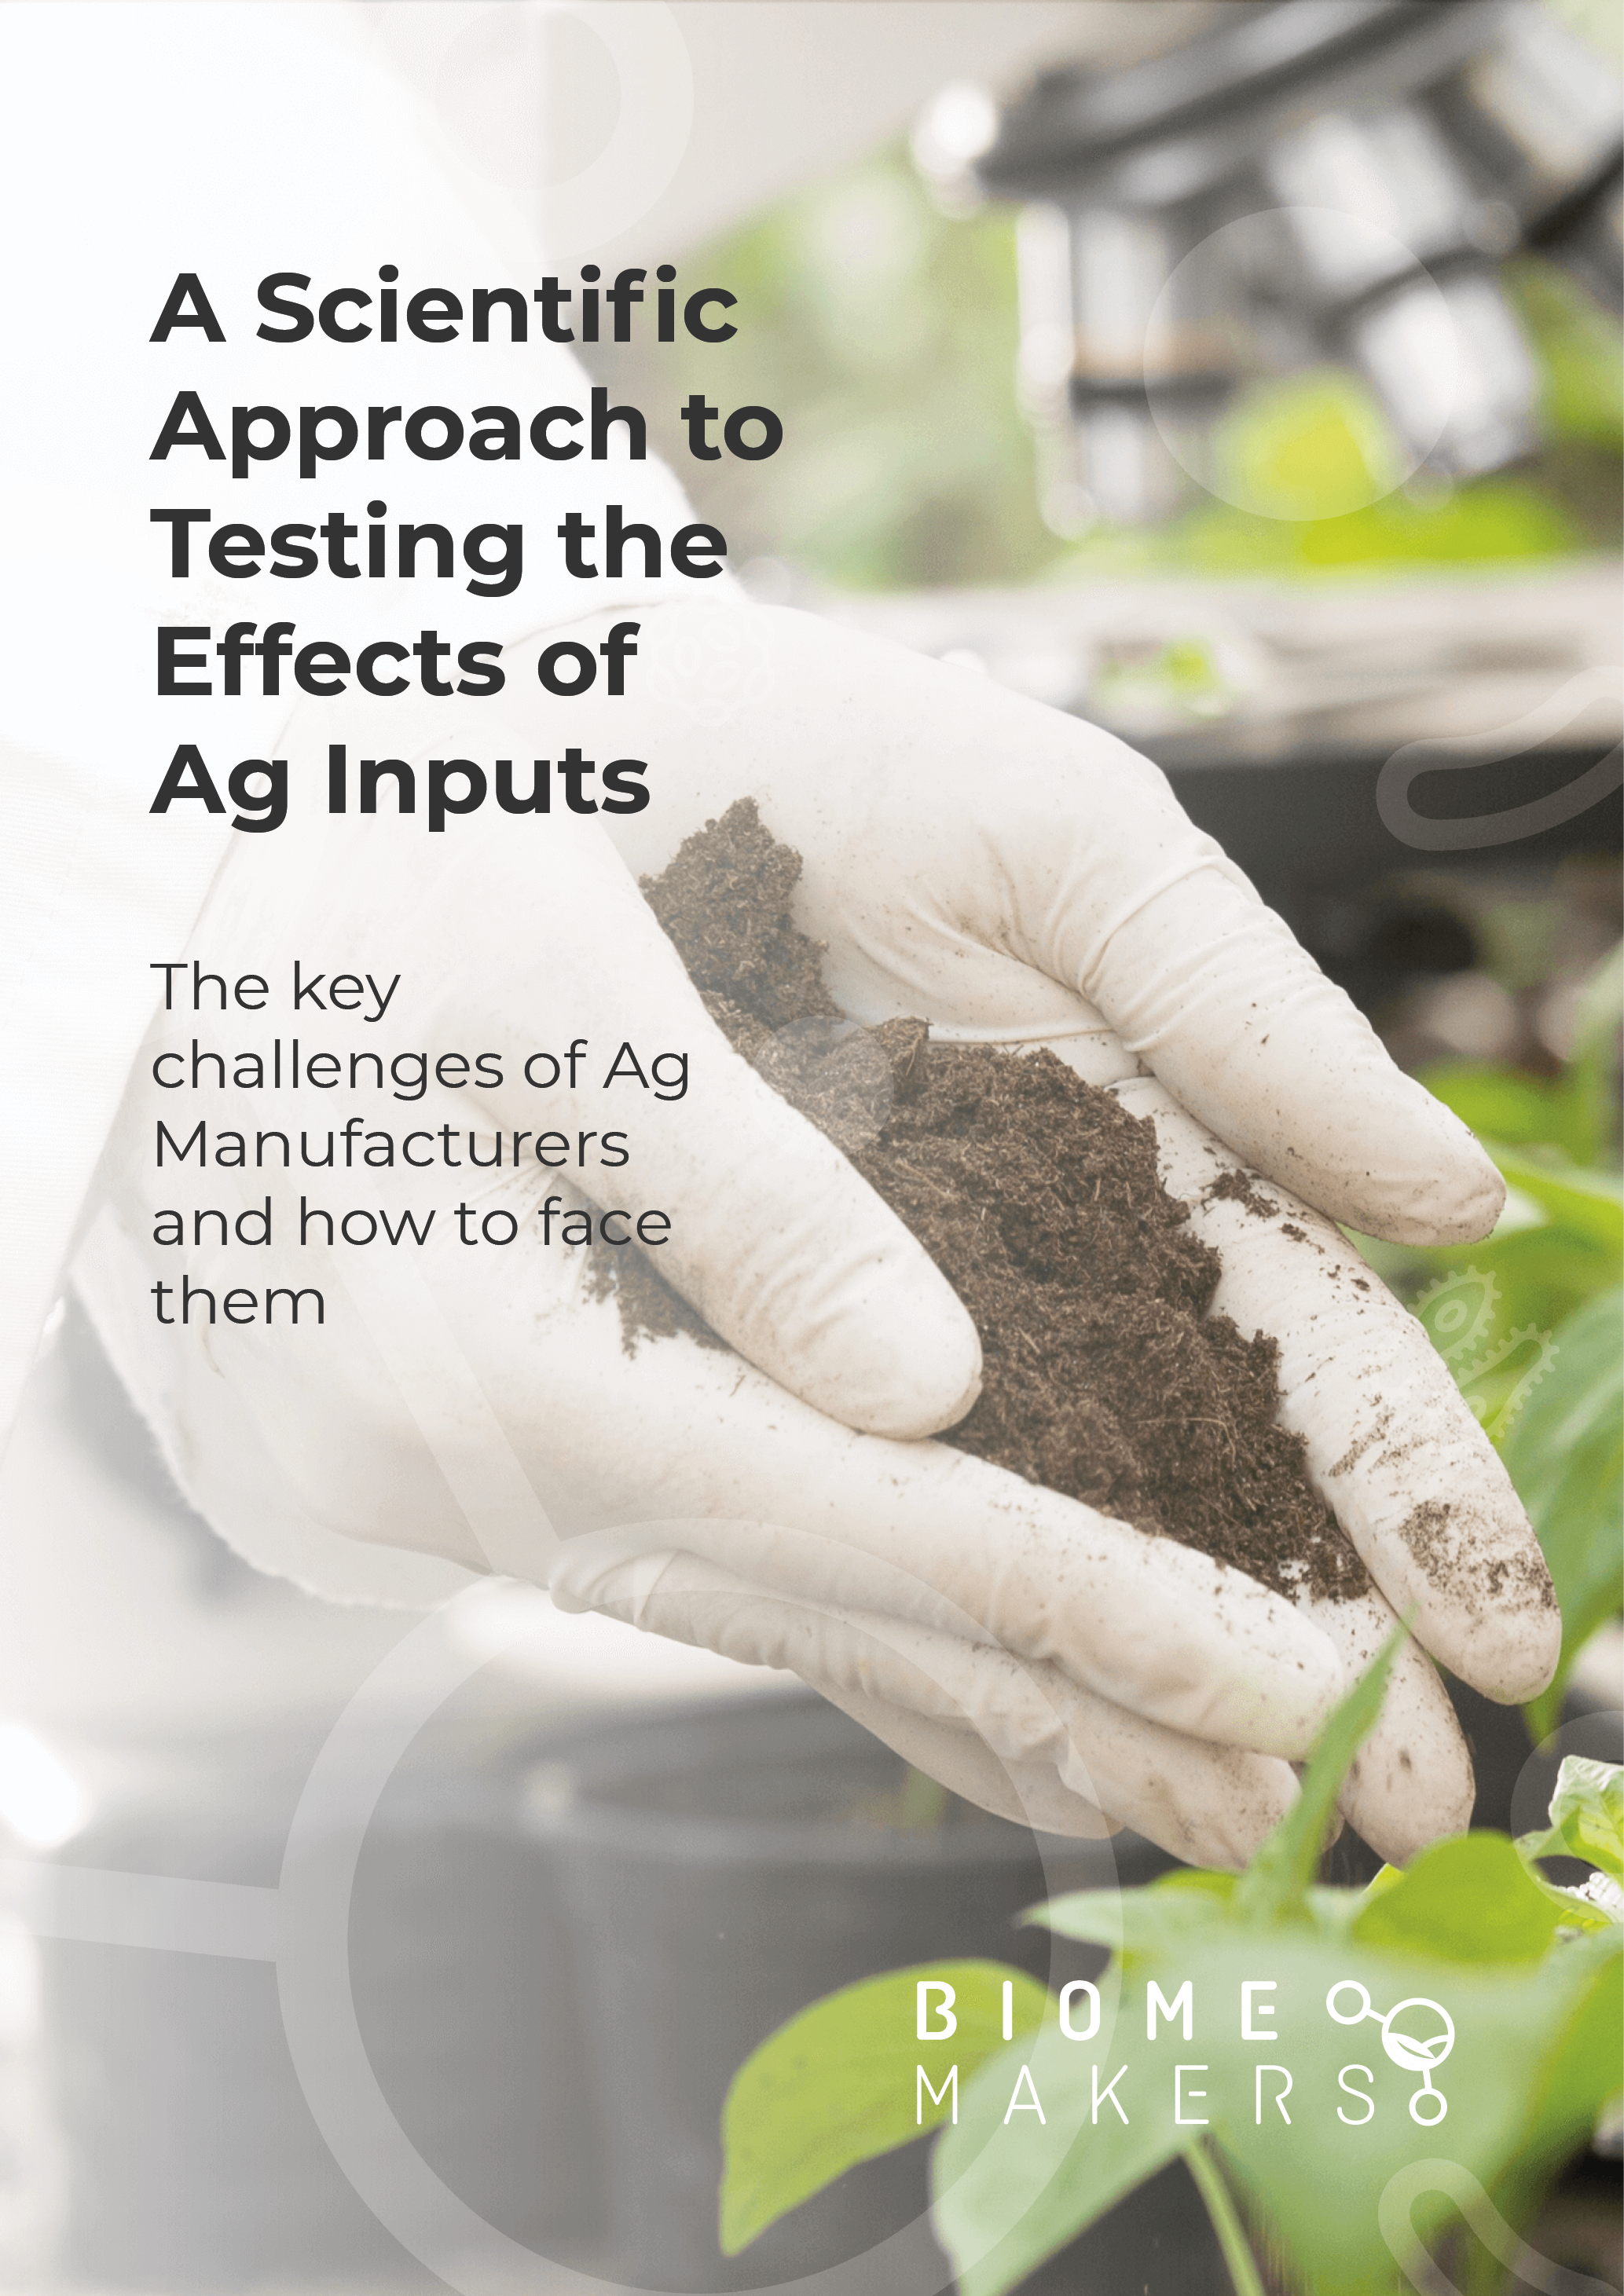 BIO - Portada 2D -  A Scientific Approach to Testing the Effects of Ag Inputs